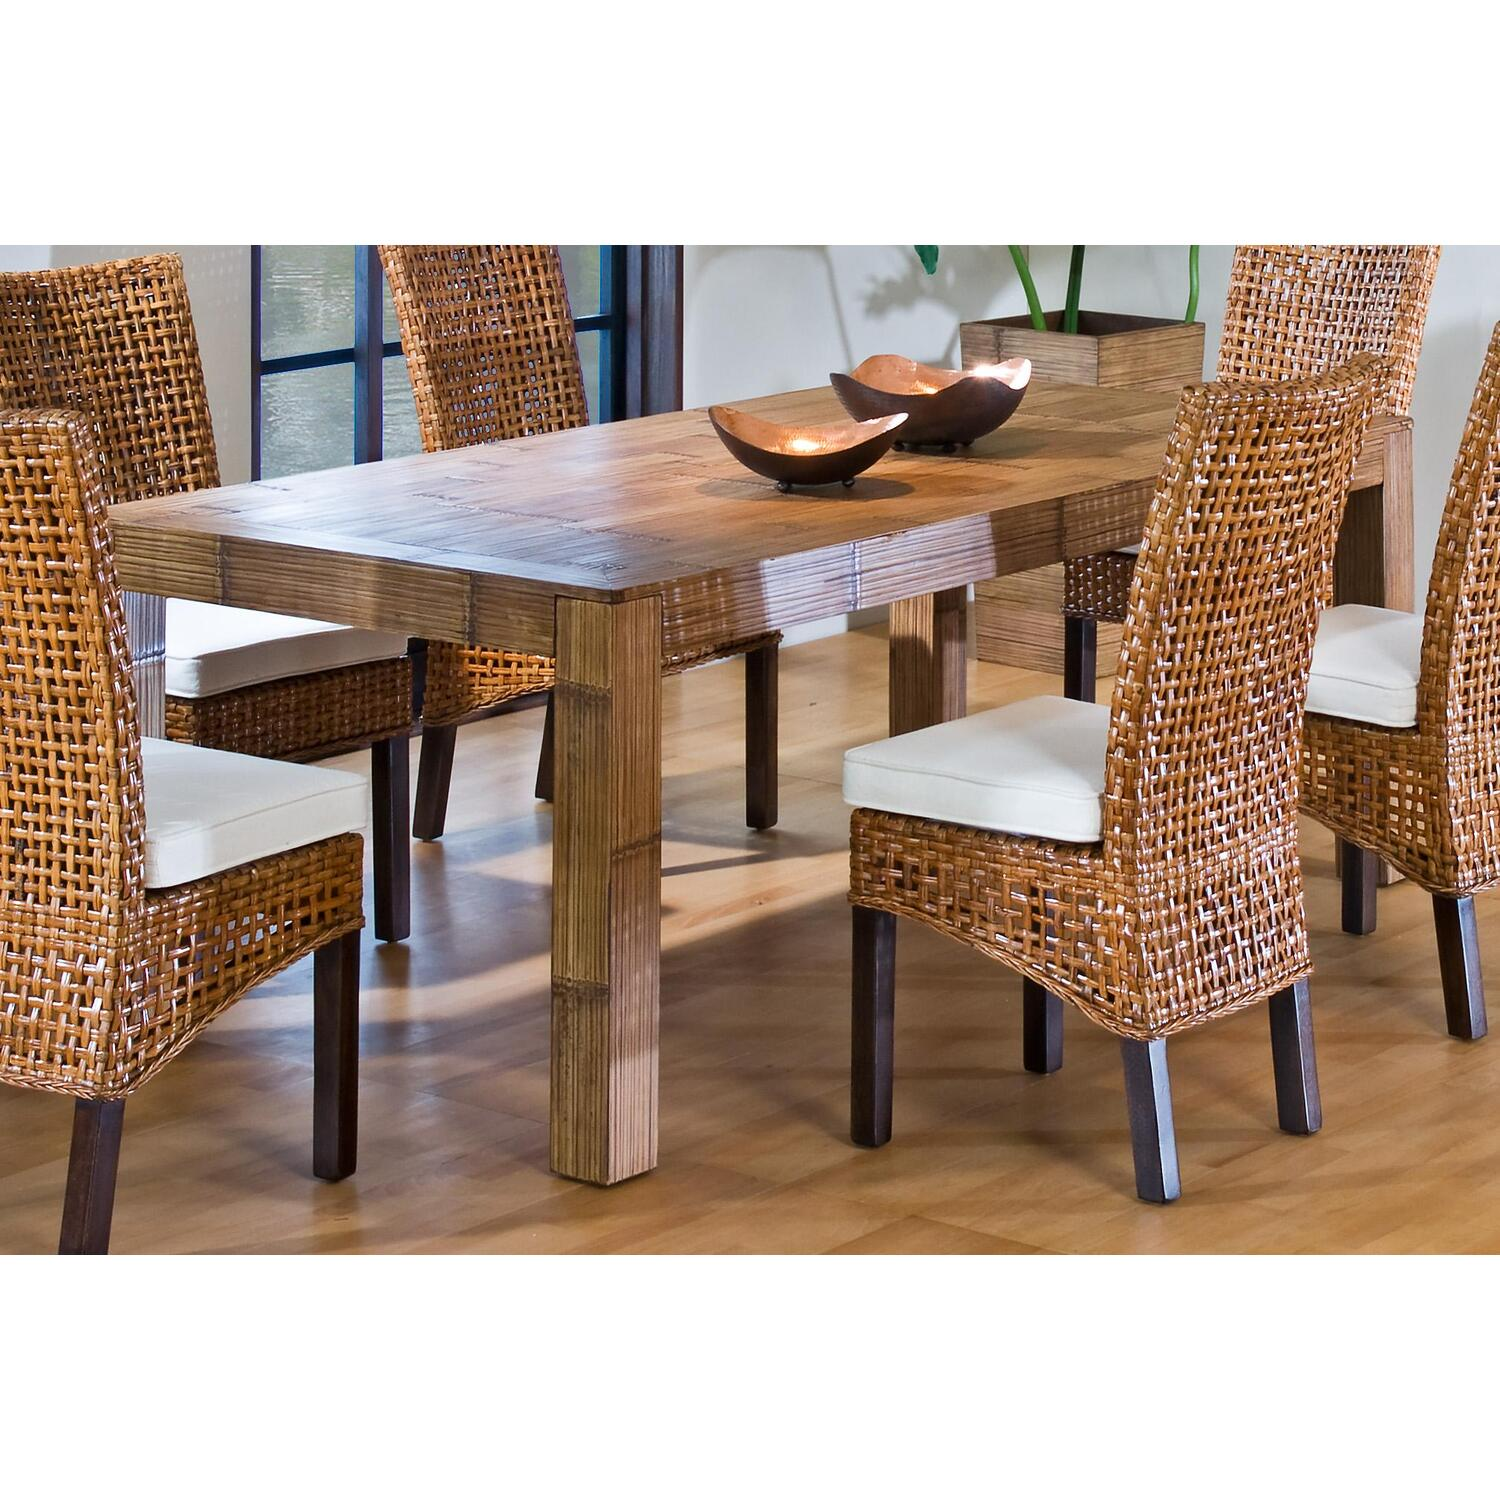 Dining table indoor wicker dining table for Table et chaise en rotin